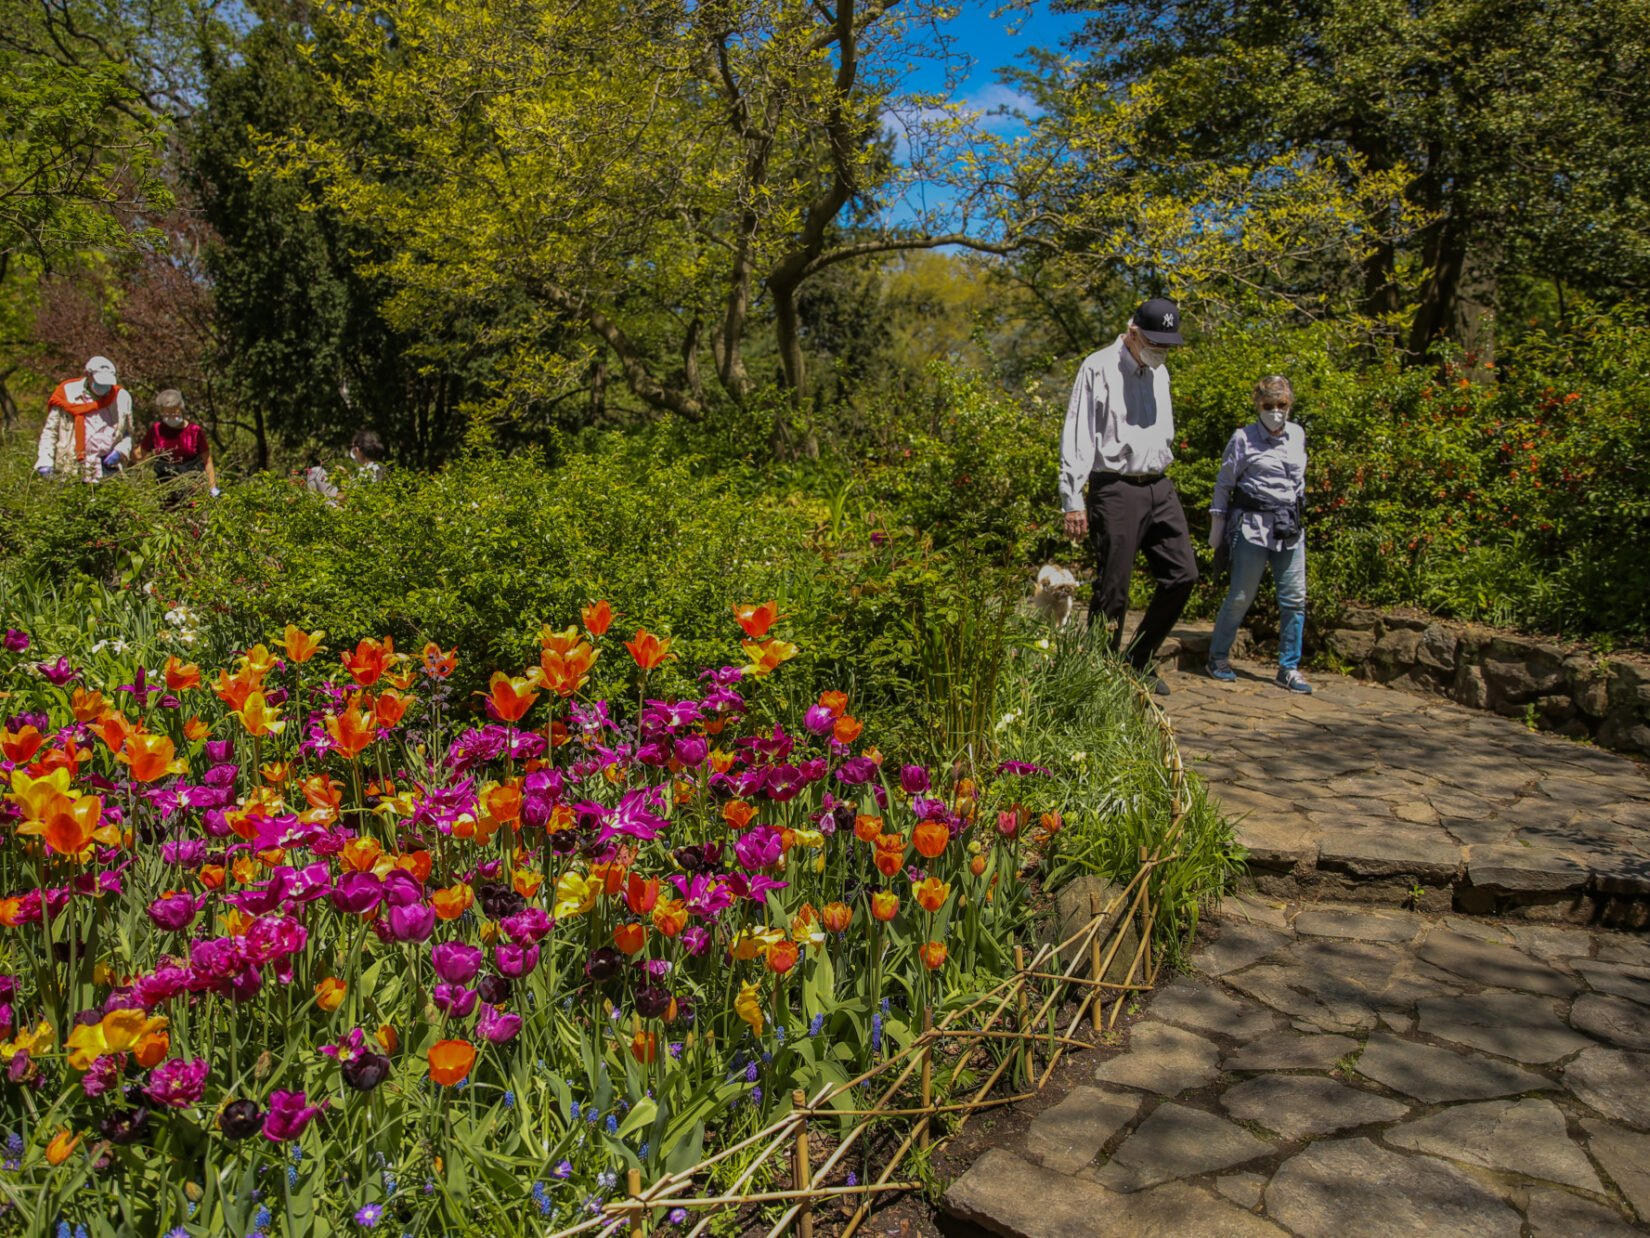 Masked visitors stroll the paths of the Shakespeare Garden